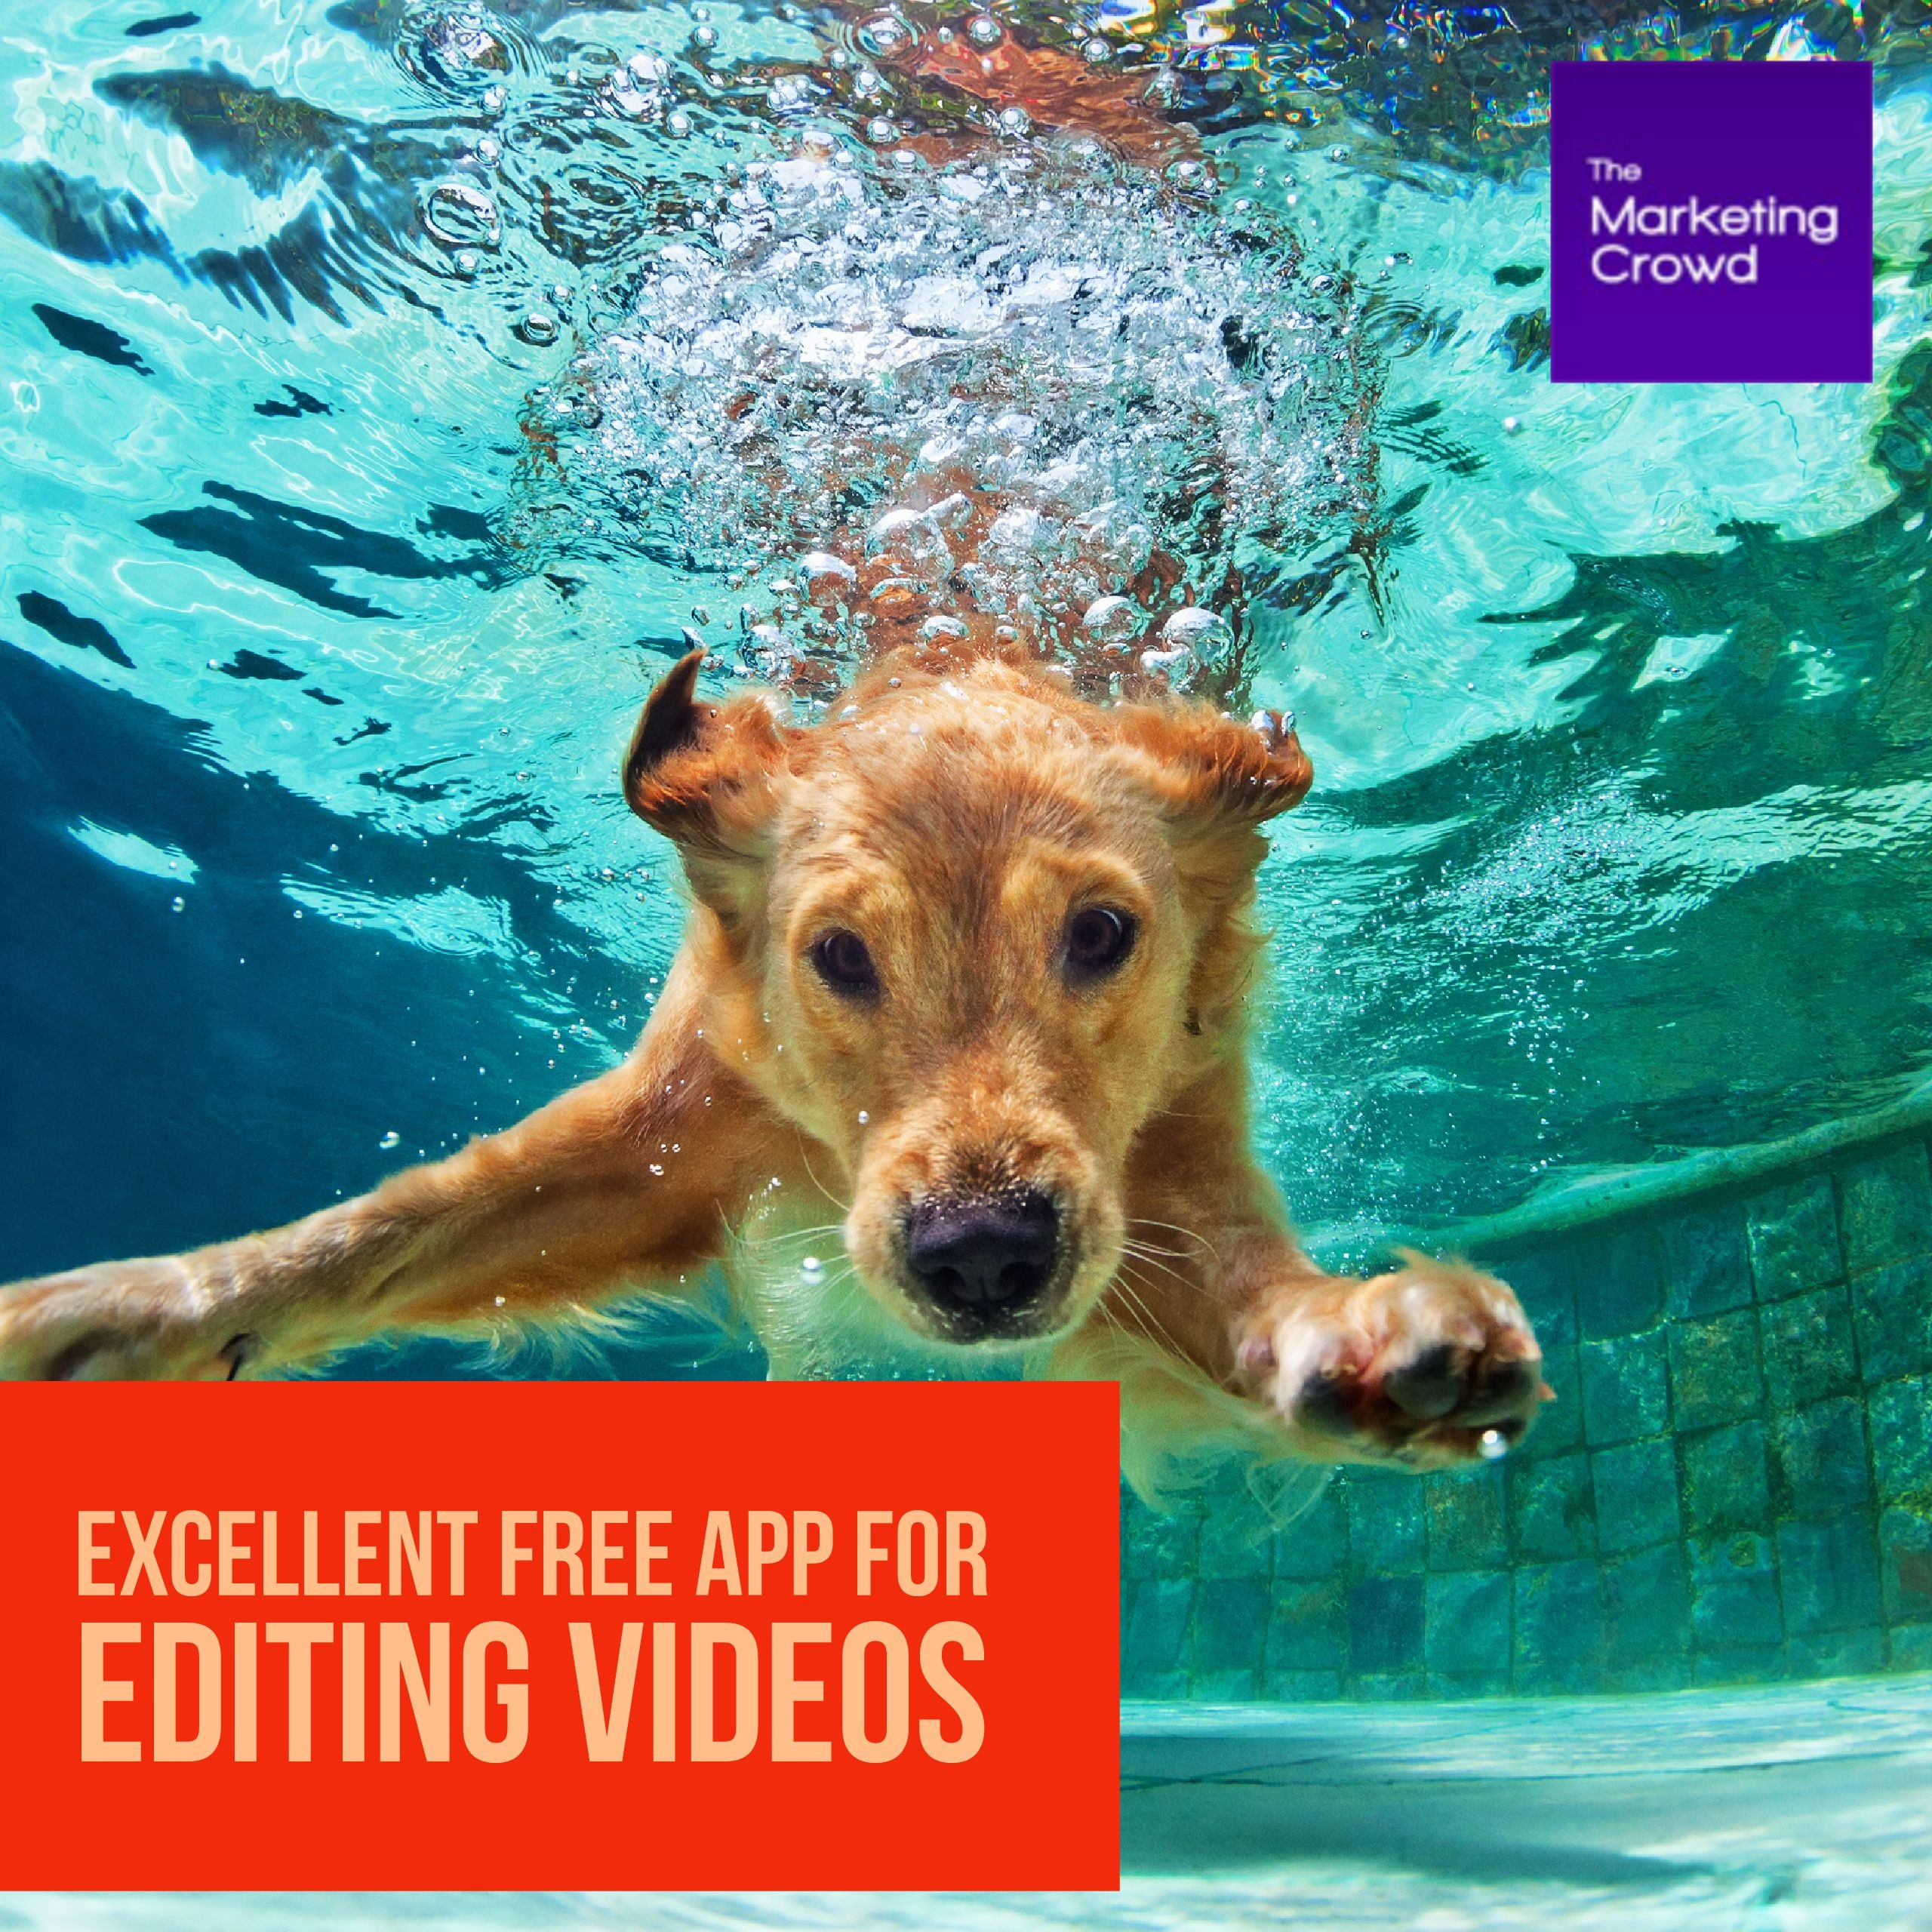 Vlogit video editing app